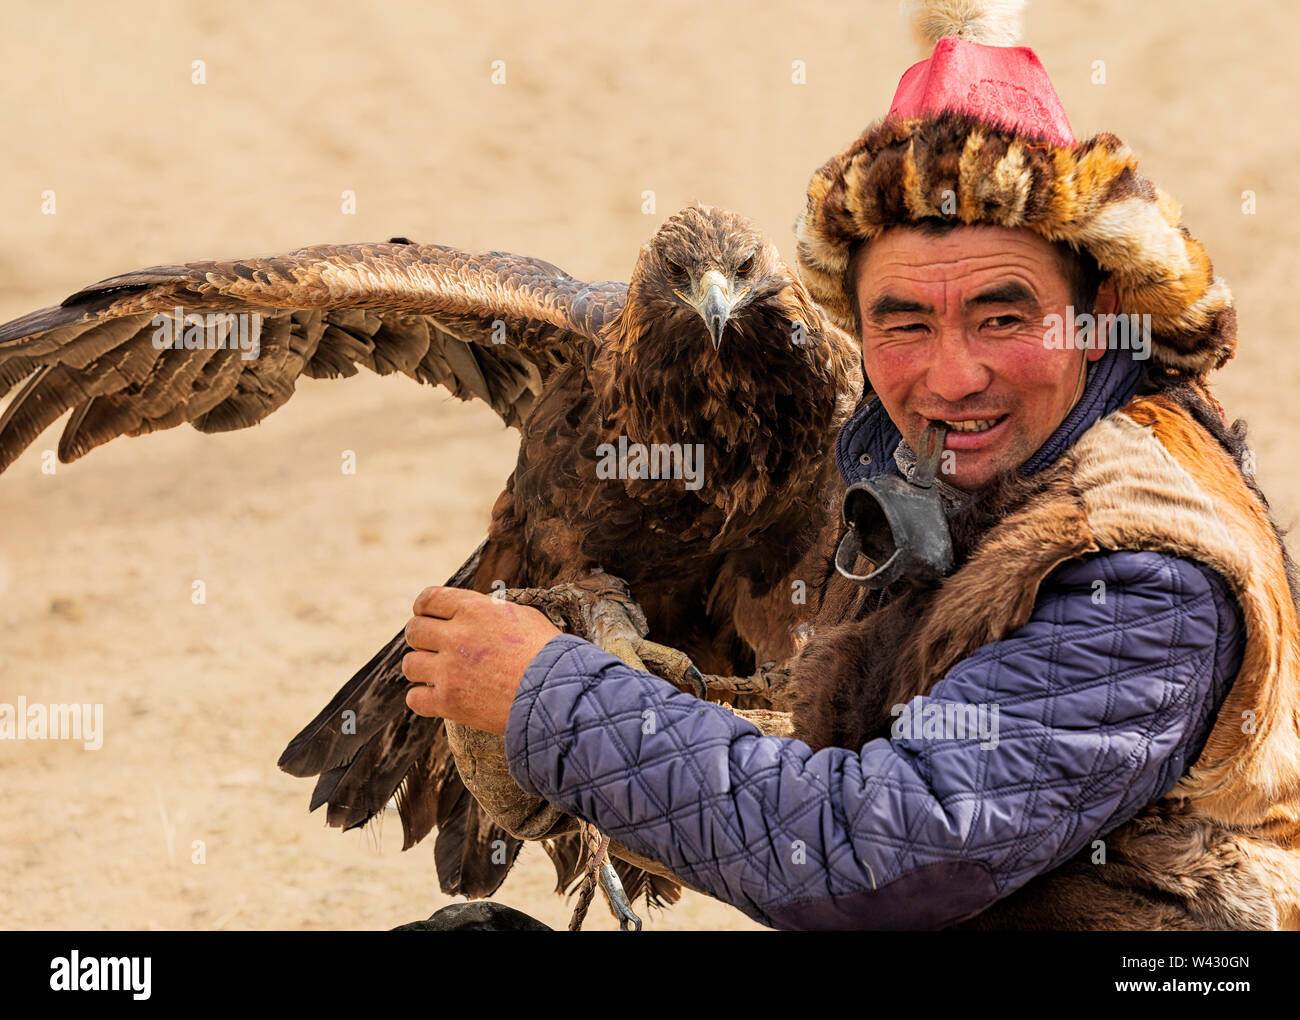 Bayan-Ulgii, Western Mongolia - October 07, 2018: Nomad Games, Golden Eagle Festival. Sunny Day. Mongolian Hunter is sitting With Golden Eagle On hand Stock Photo